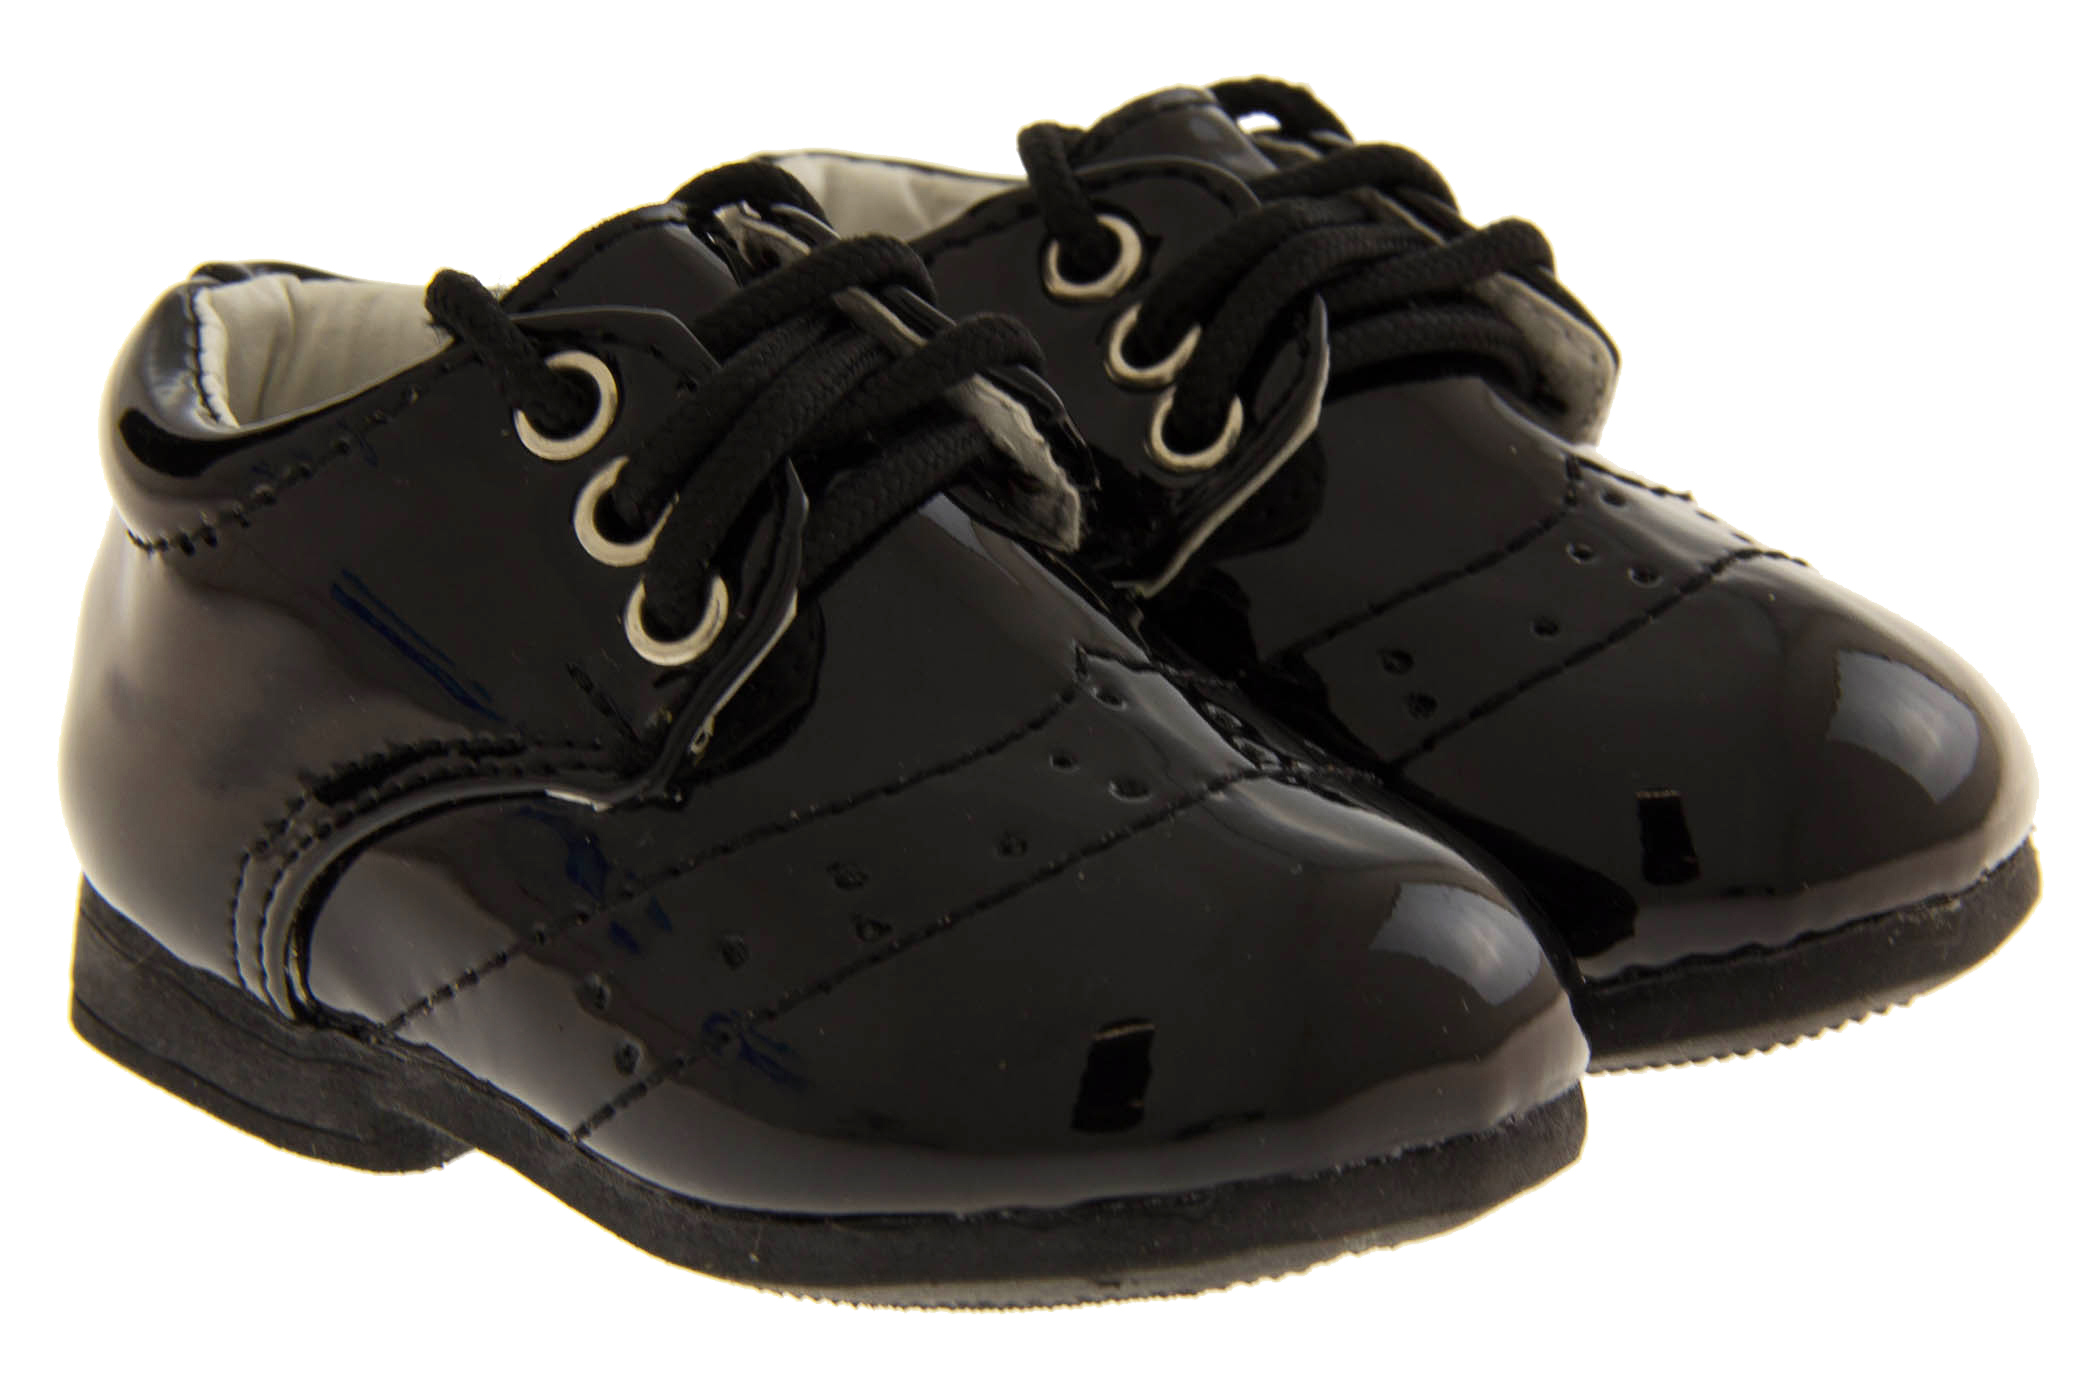 New Baby Boy Toddler Black Lace Up Shoes Smart Christening Party Sz 0 1 2 3 4 5